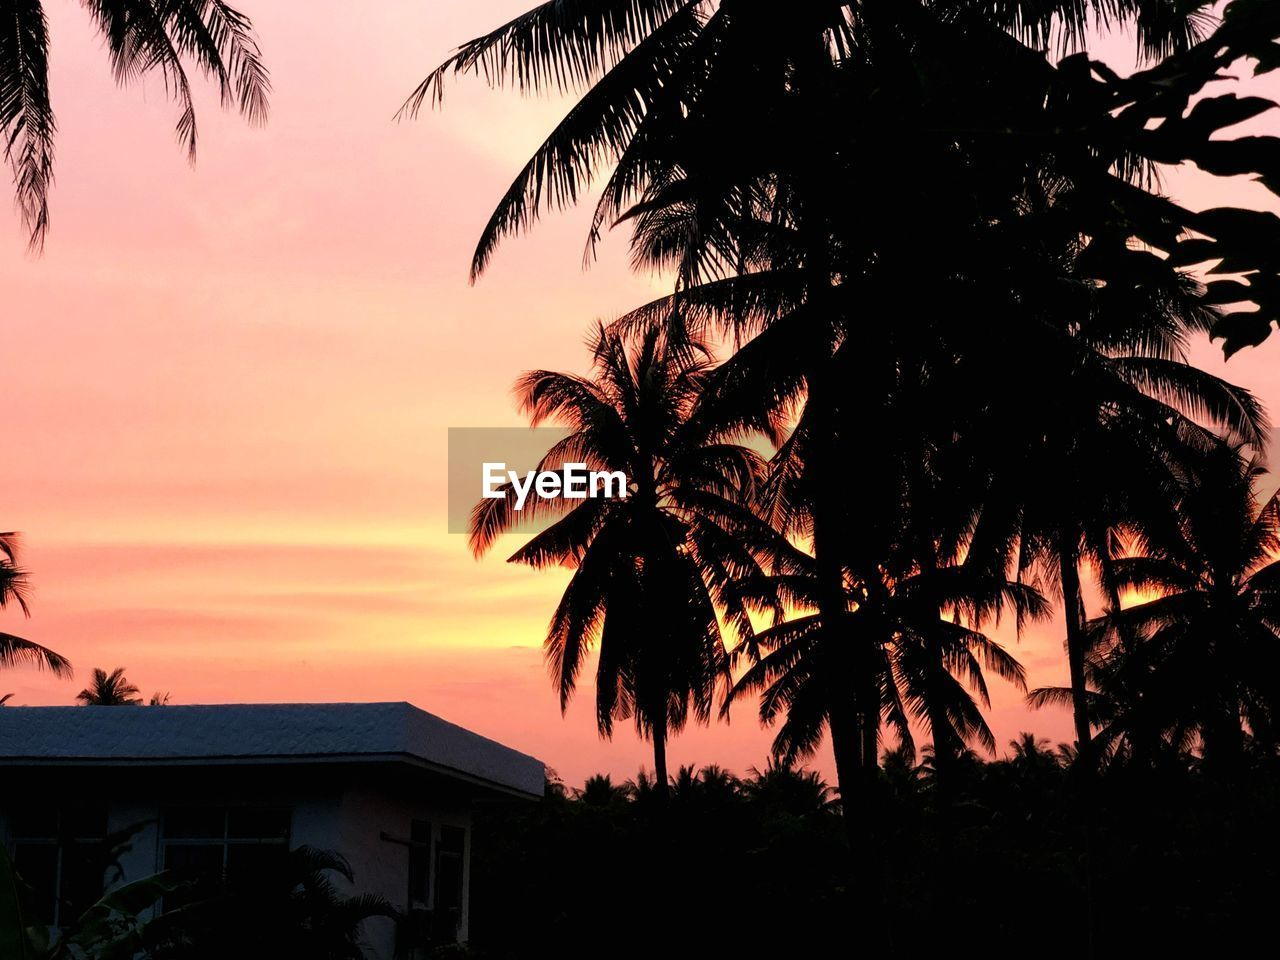 sky, sunset, tree, tropical climate, silhouette, plant, palm tree, built structure, beauty in nature, orange color, building exterior, architecture, nature, no people, building, cloud - sky, scenics - nature, house, tranquility, outdoors, coconut palm tree, romantic sky